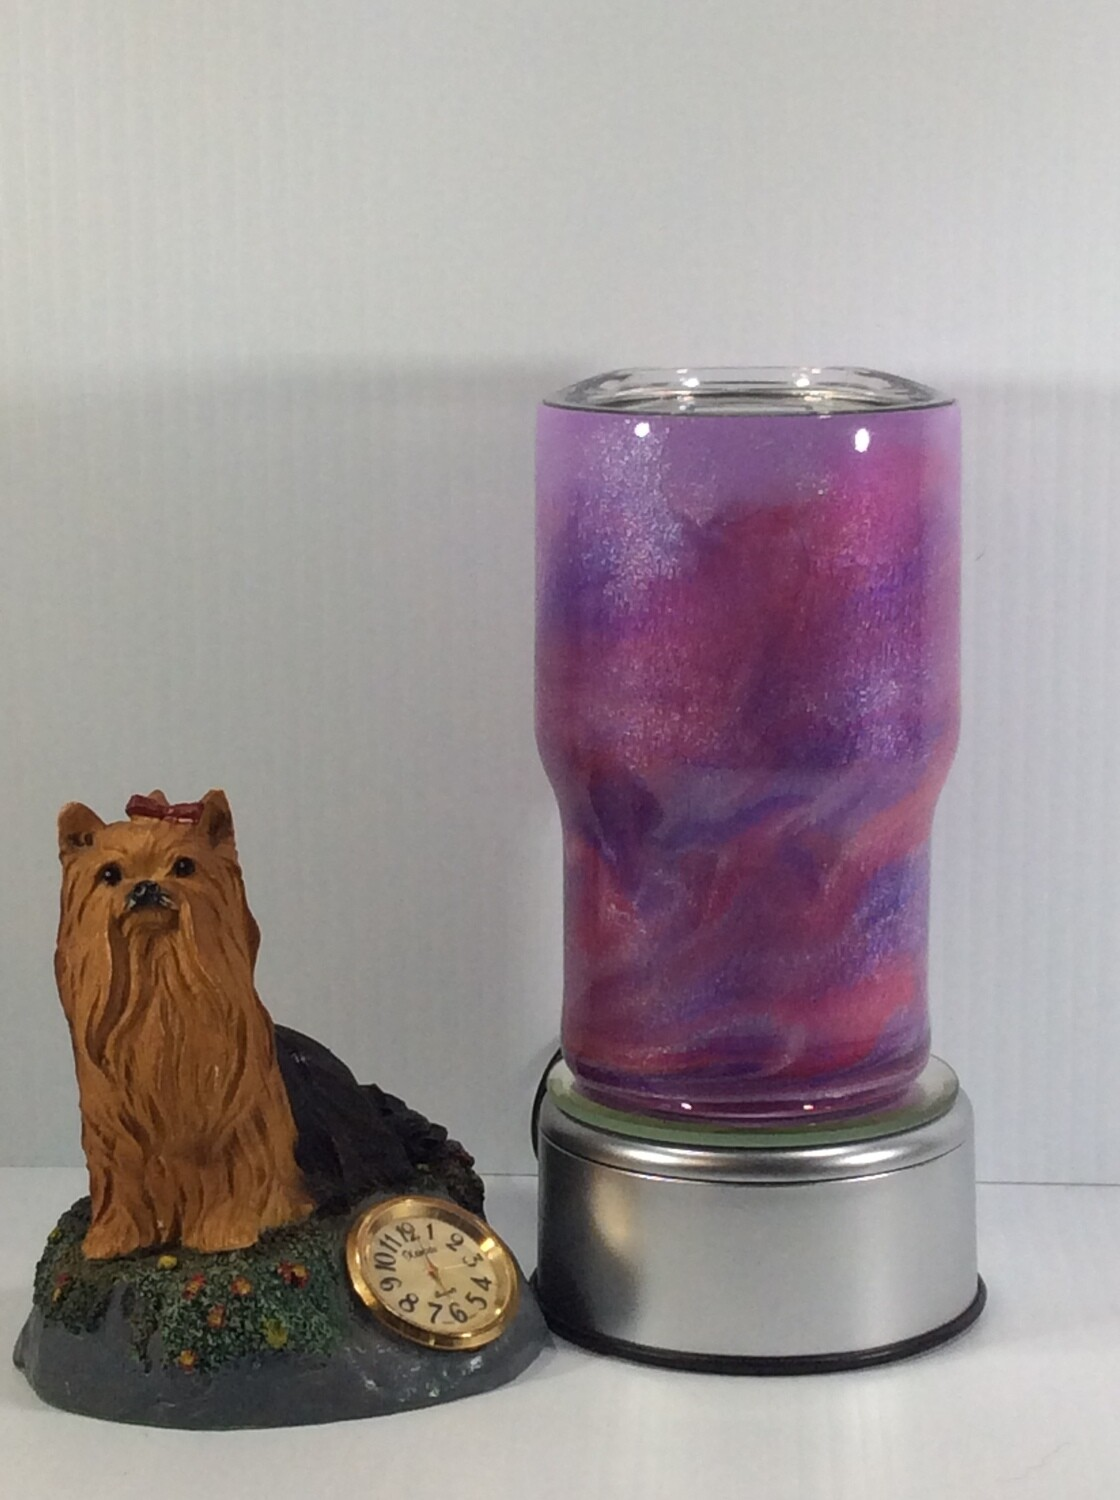 Mica stainless steel tumbler